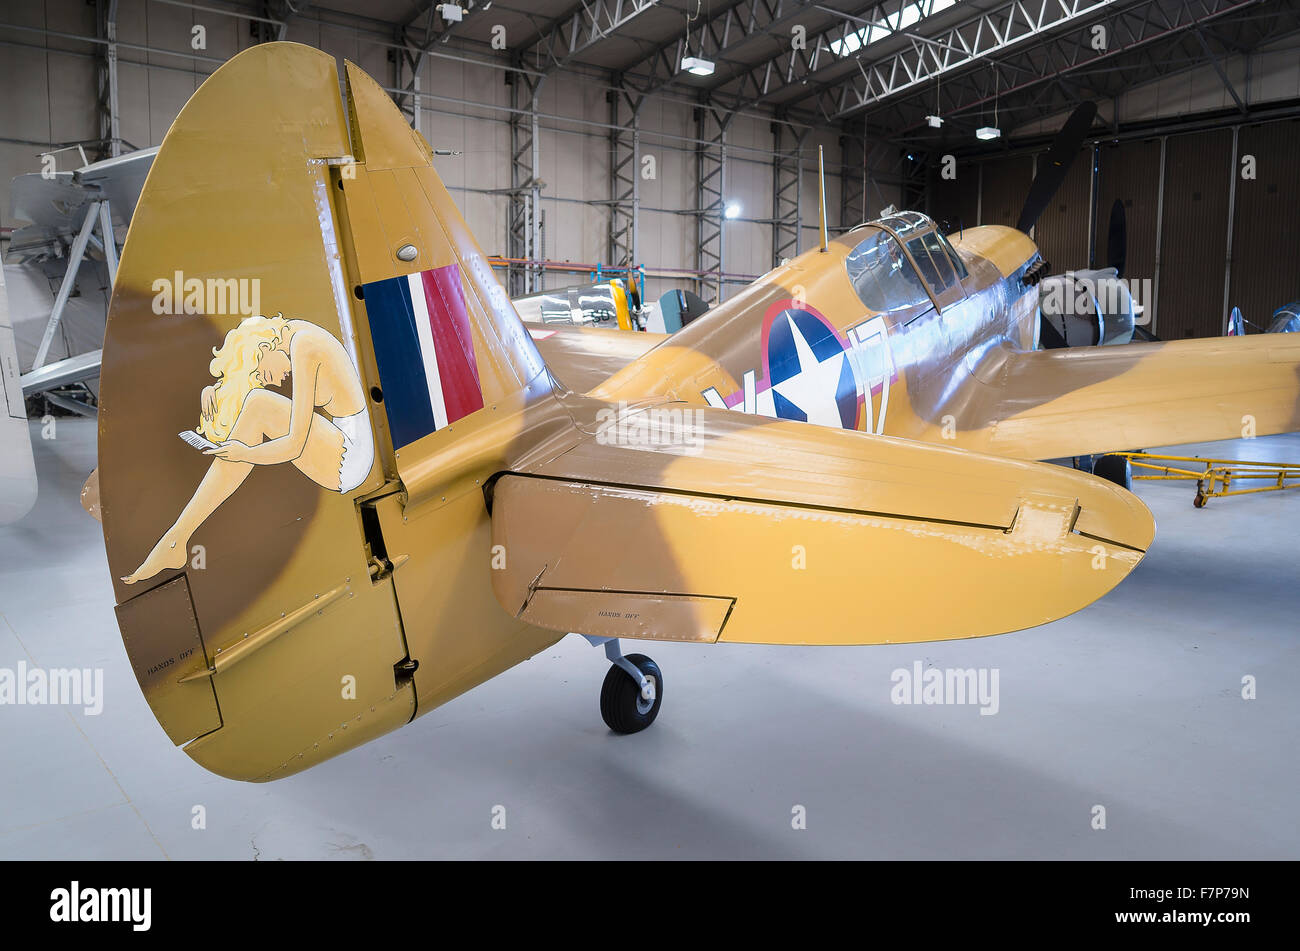 Rear view of a Mustang P51 in a Duxford hangar in UK - Stock Image